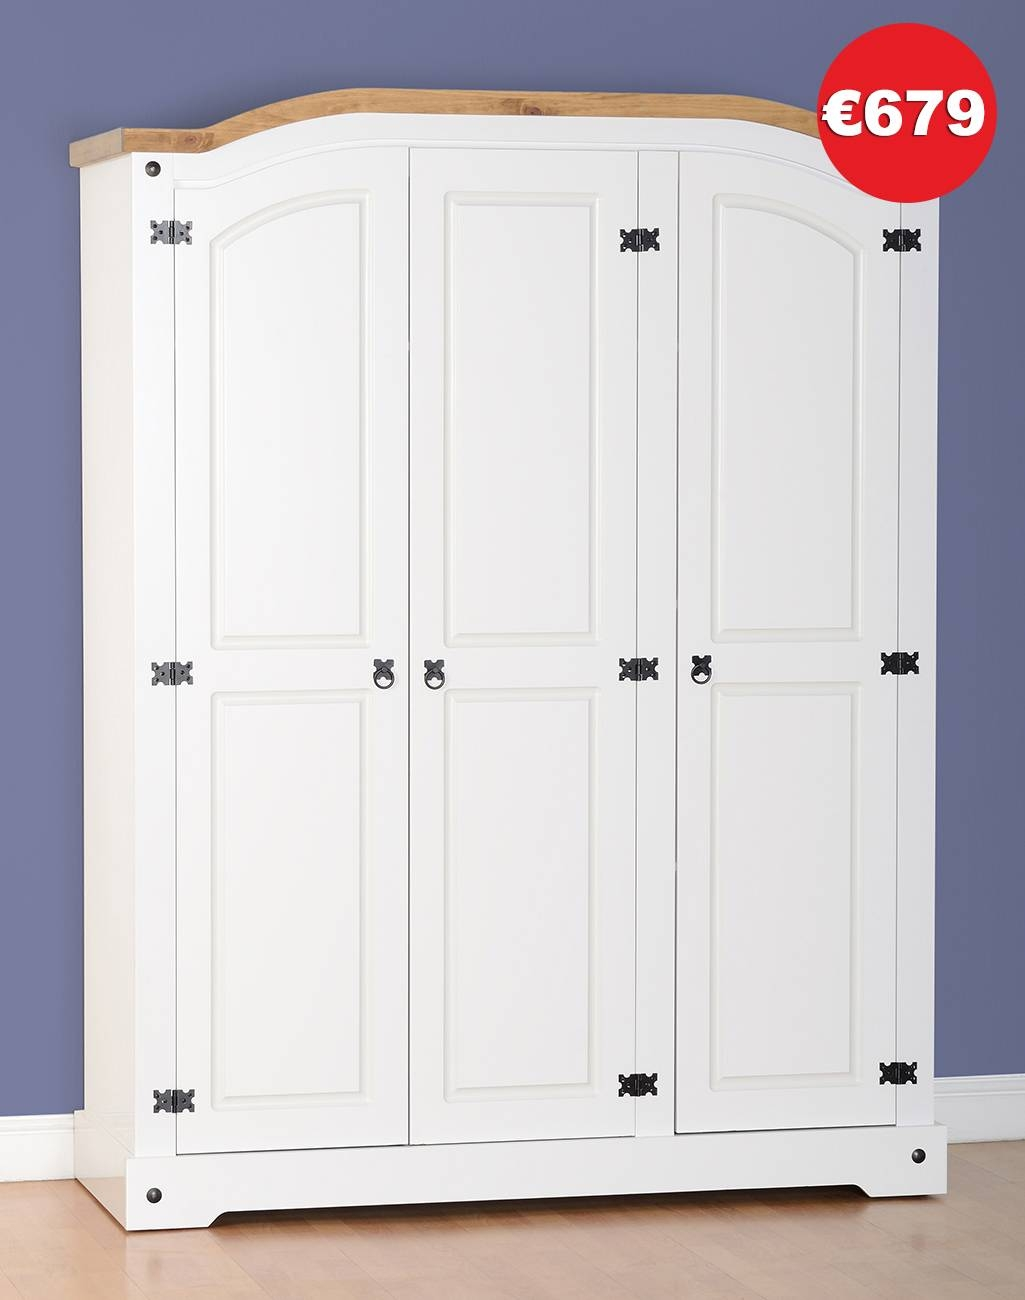 Corona 3 Door White Wardrobe - The Bed Store throughout 3 Door White Wardrobes (Image 6 of 30)